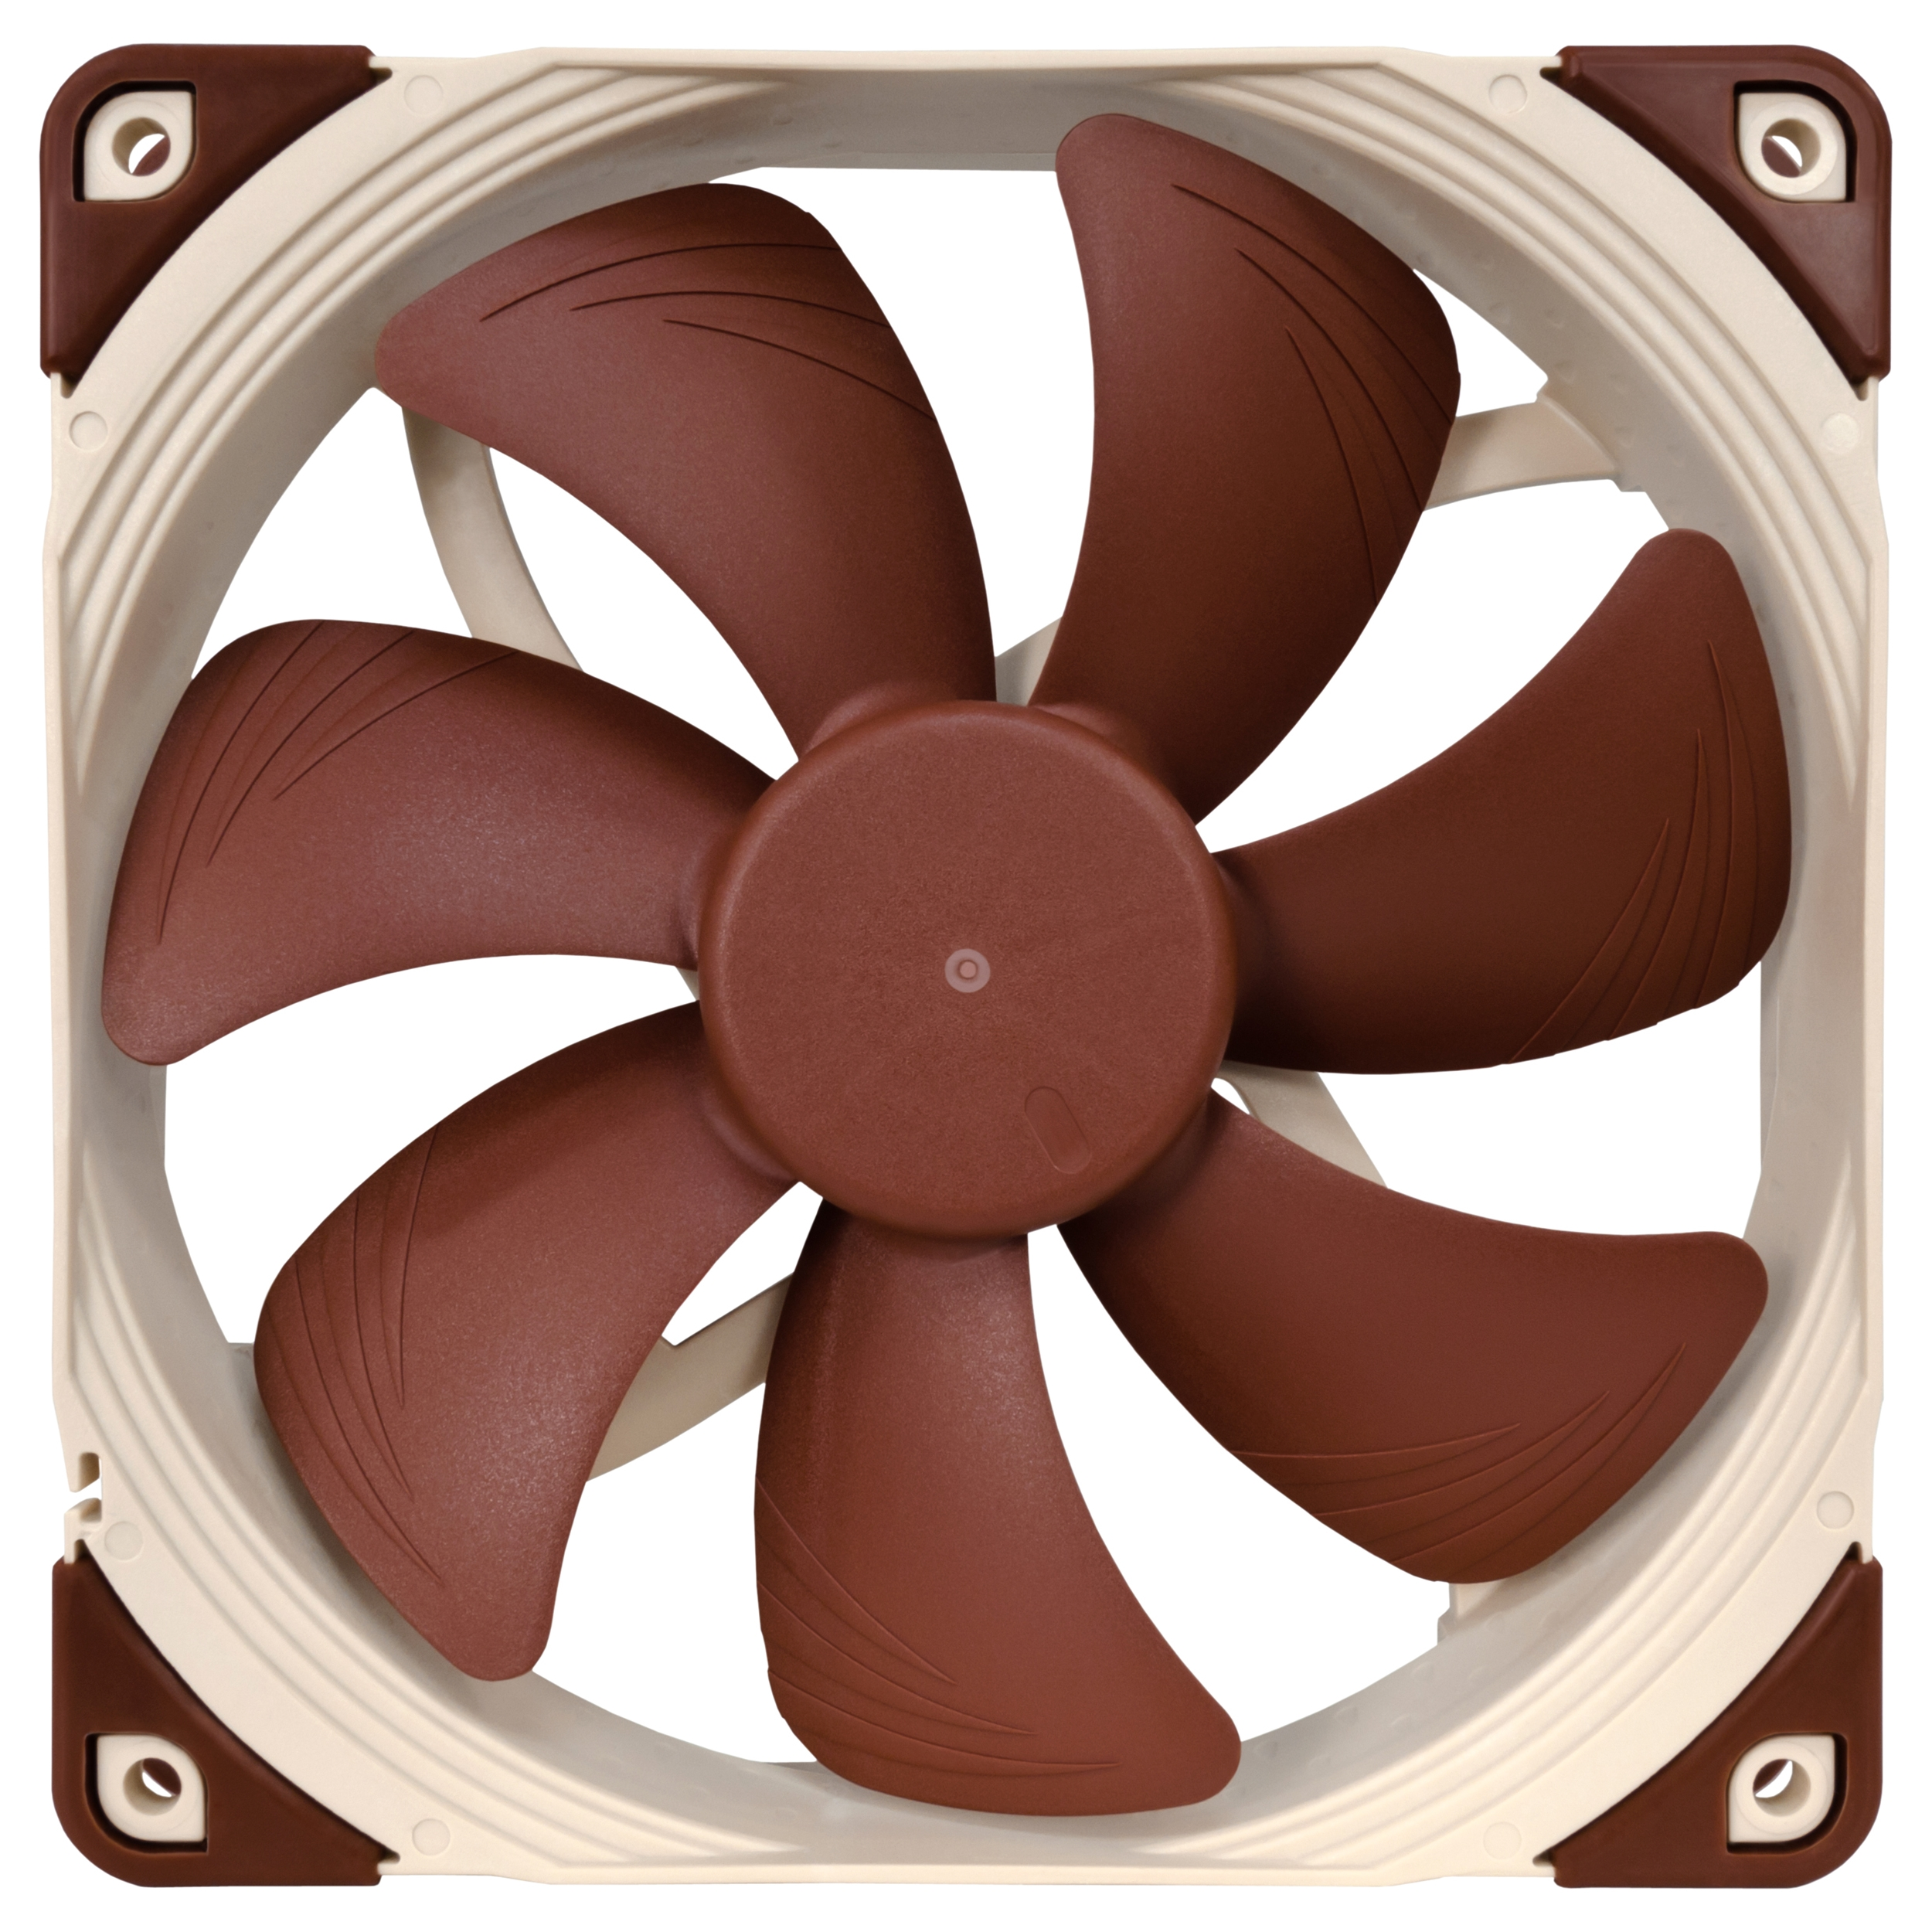 Noctua 141752 Fan Nf-a14 Flx 140x140x25mm 3pin Sso2 Bearing A-series Blade Geometry Retail